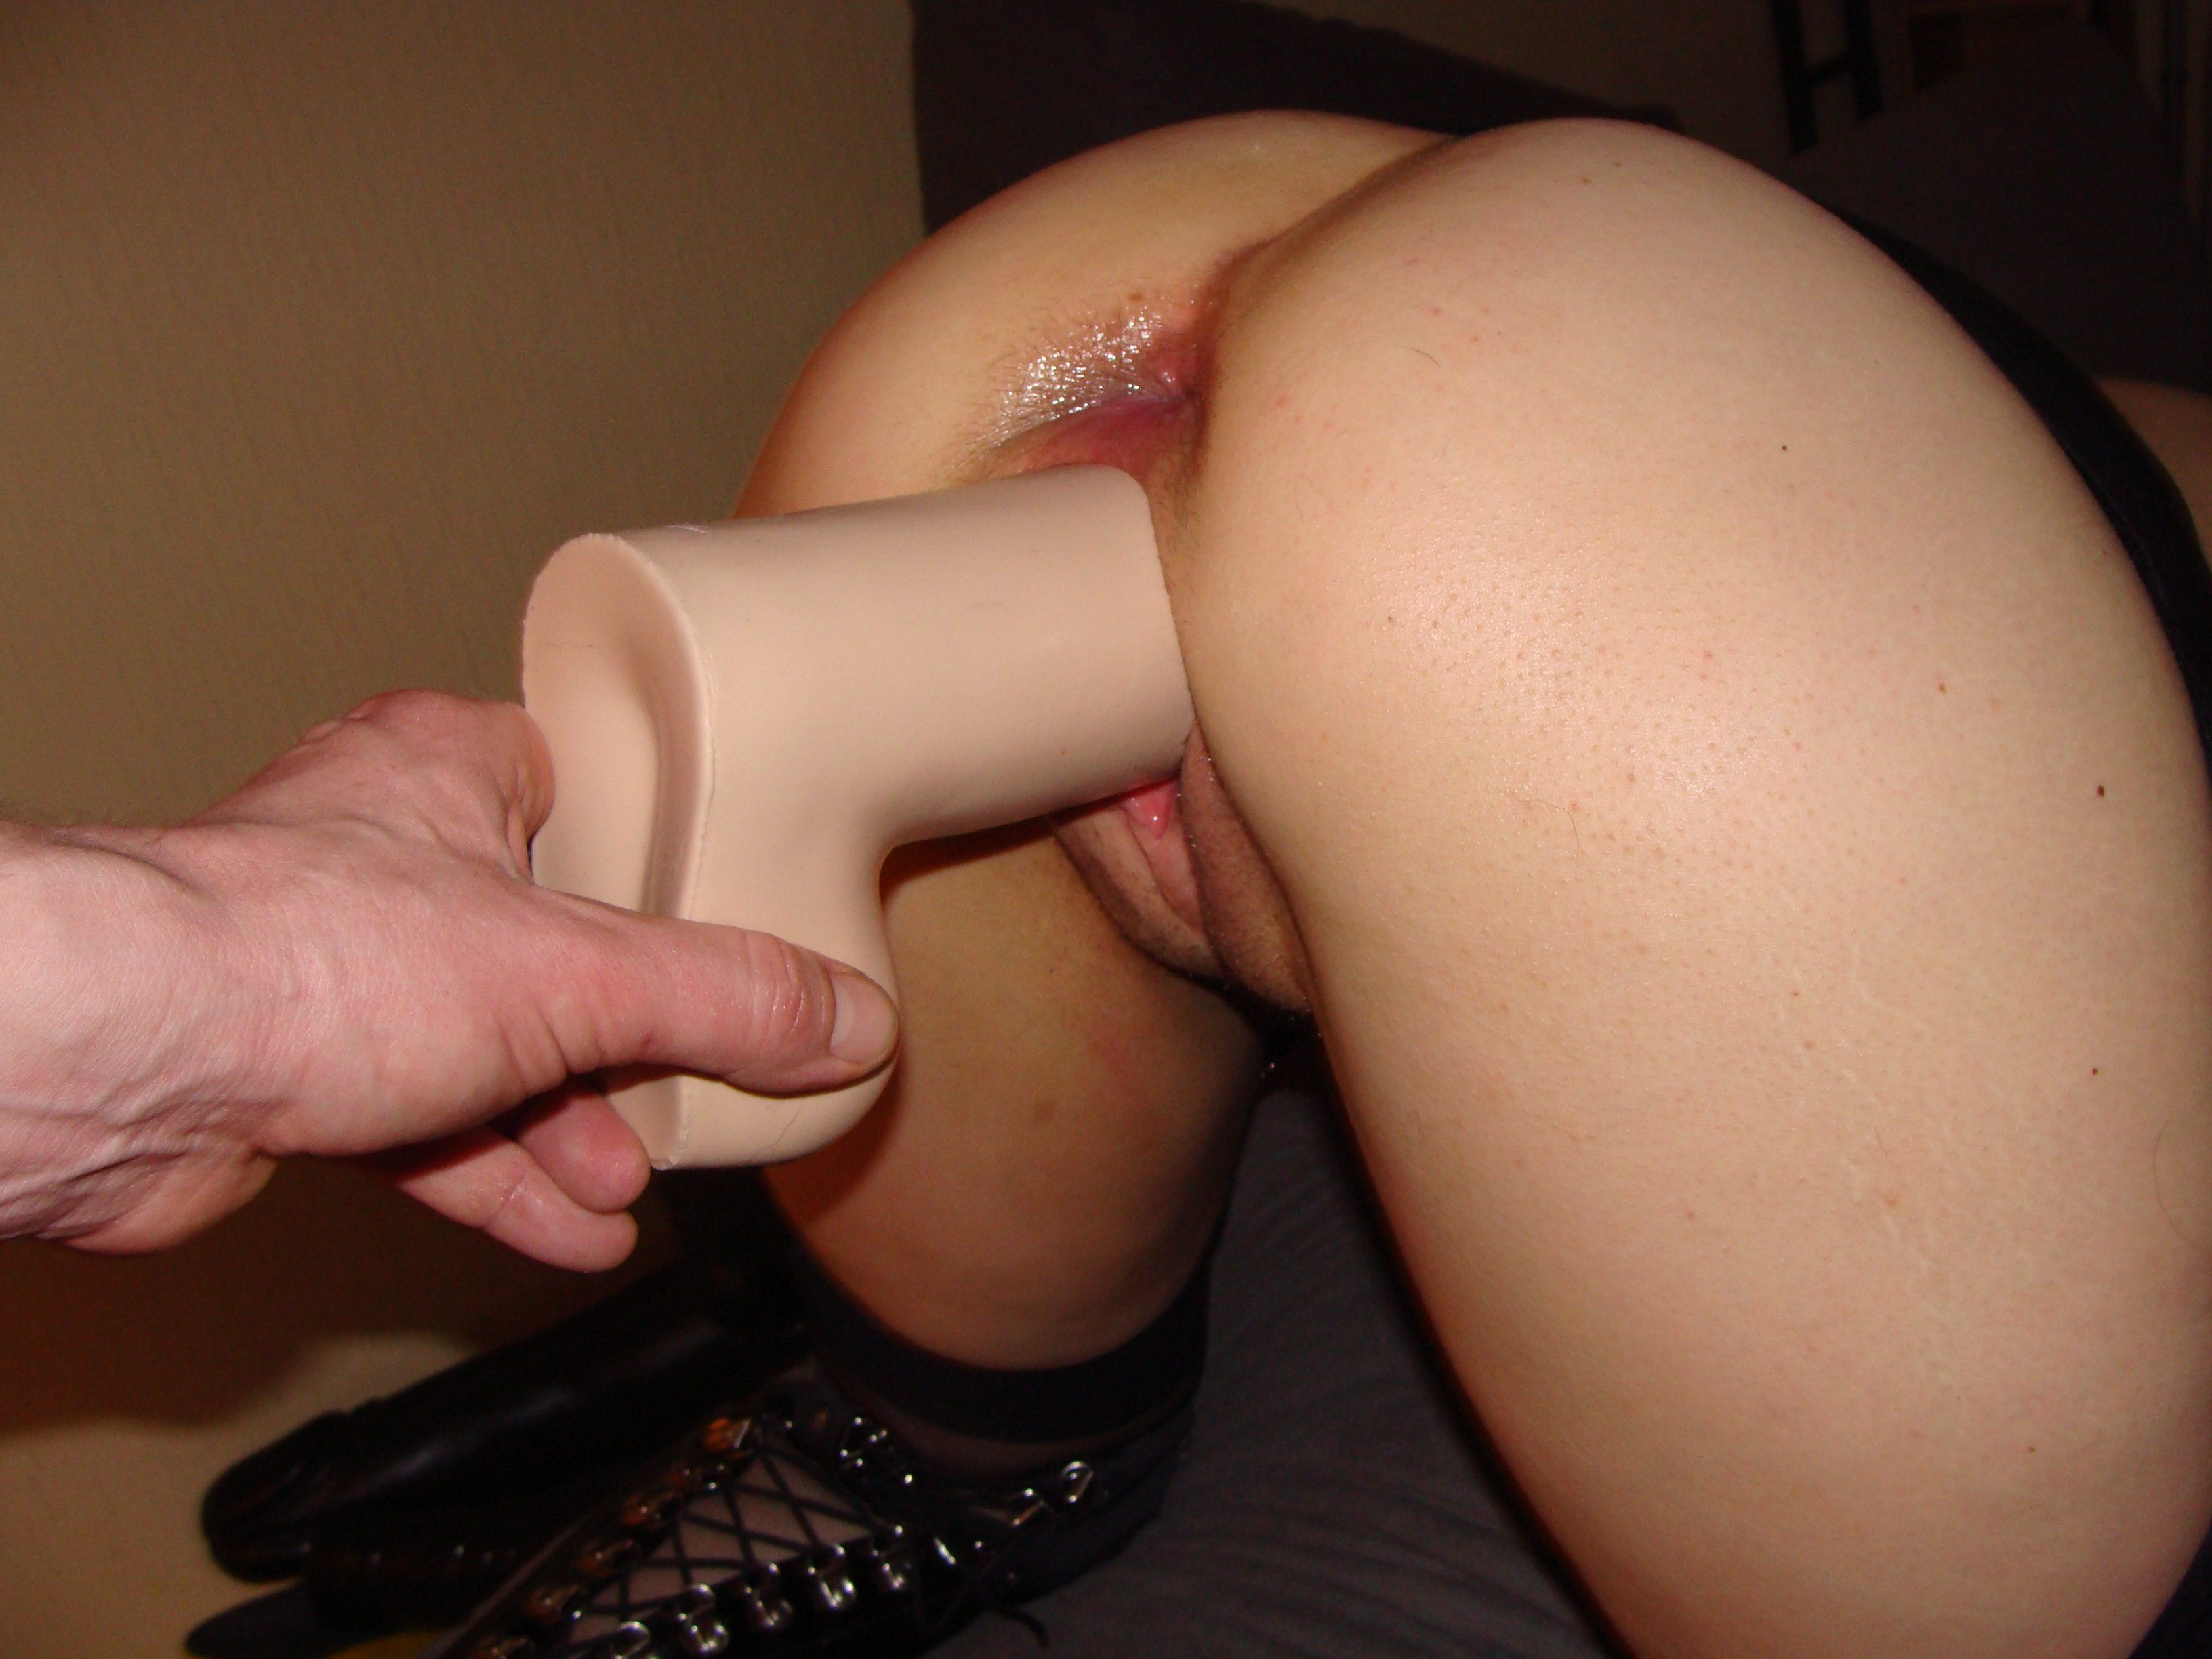 All charm! anal toy homemade with idea What words